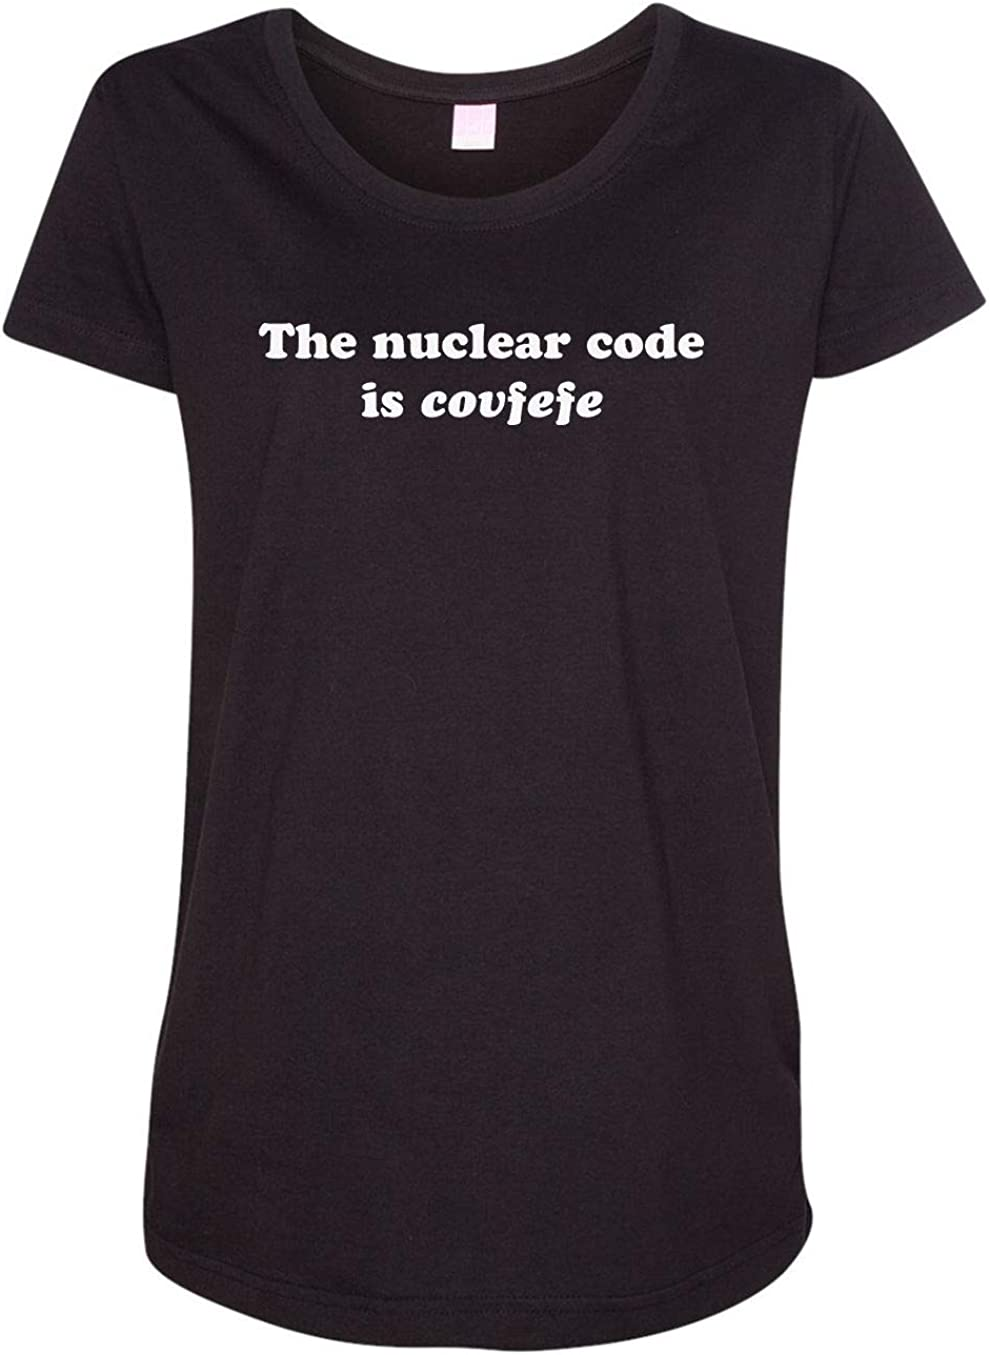 HARD EDGE Sales for sale DESIGN Women's The Code All items in the store Covfefe Nuclear is T-Shirt